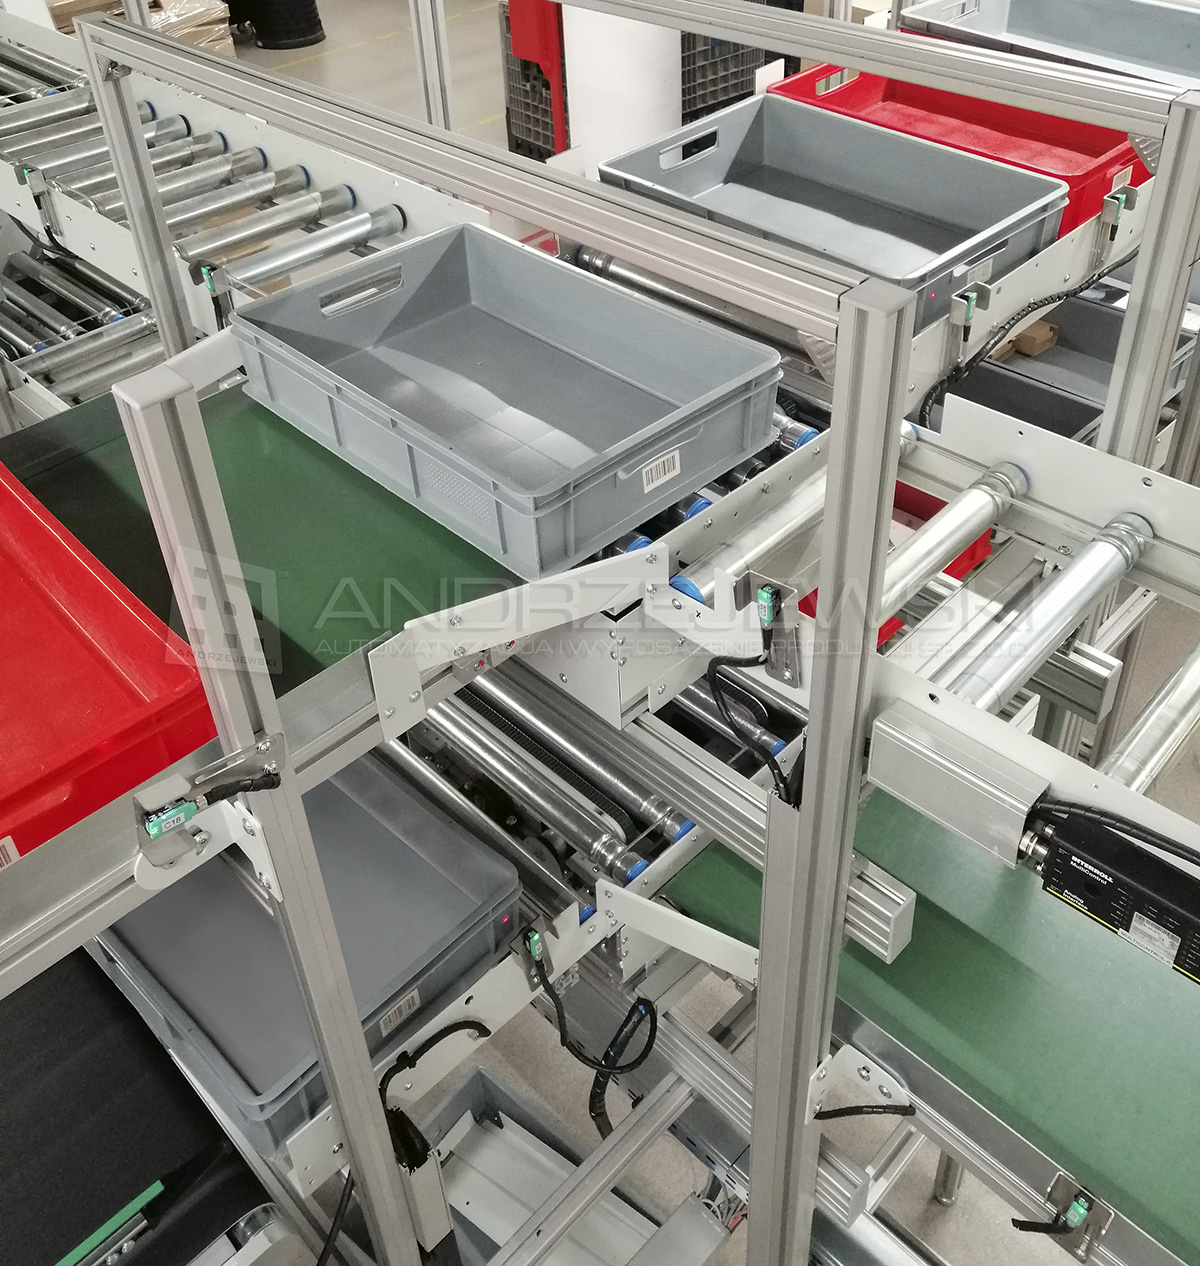 Conveyor system for internal transport of products between machines